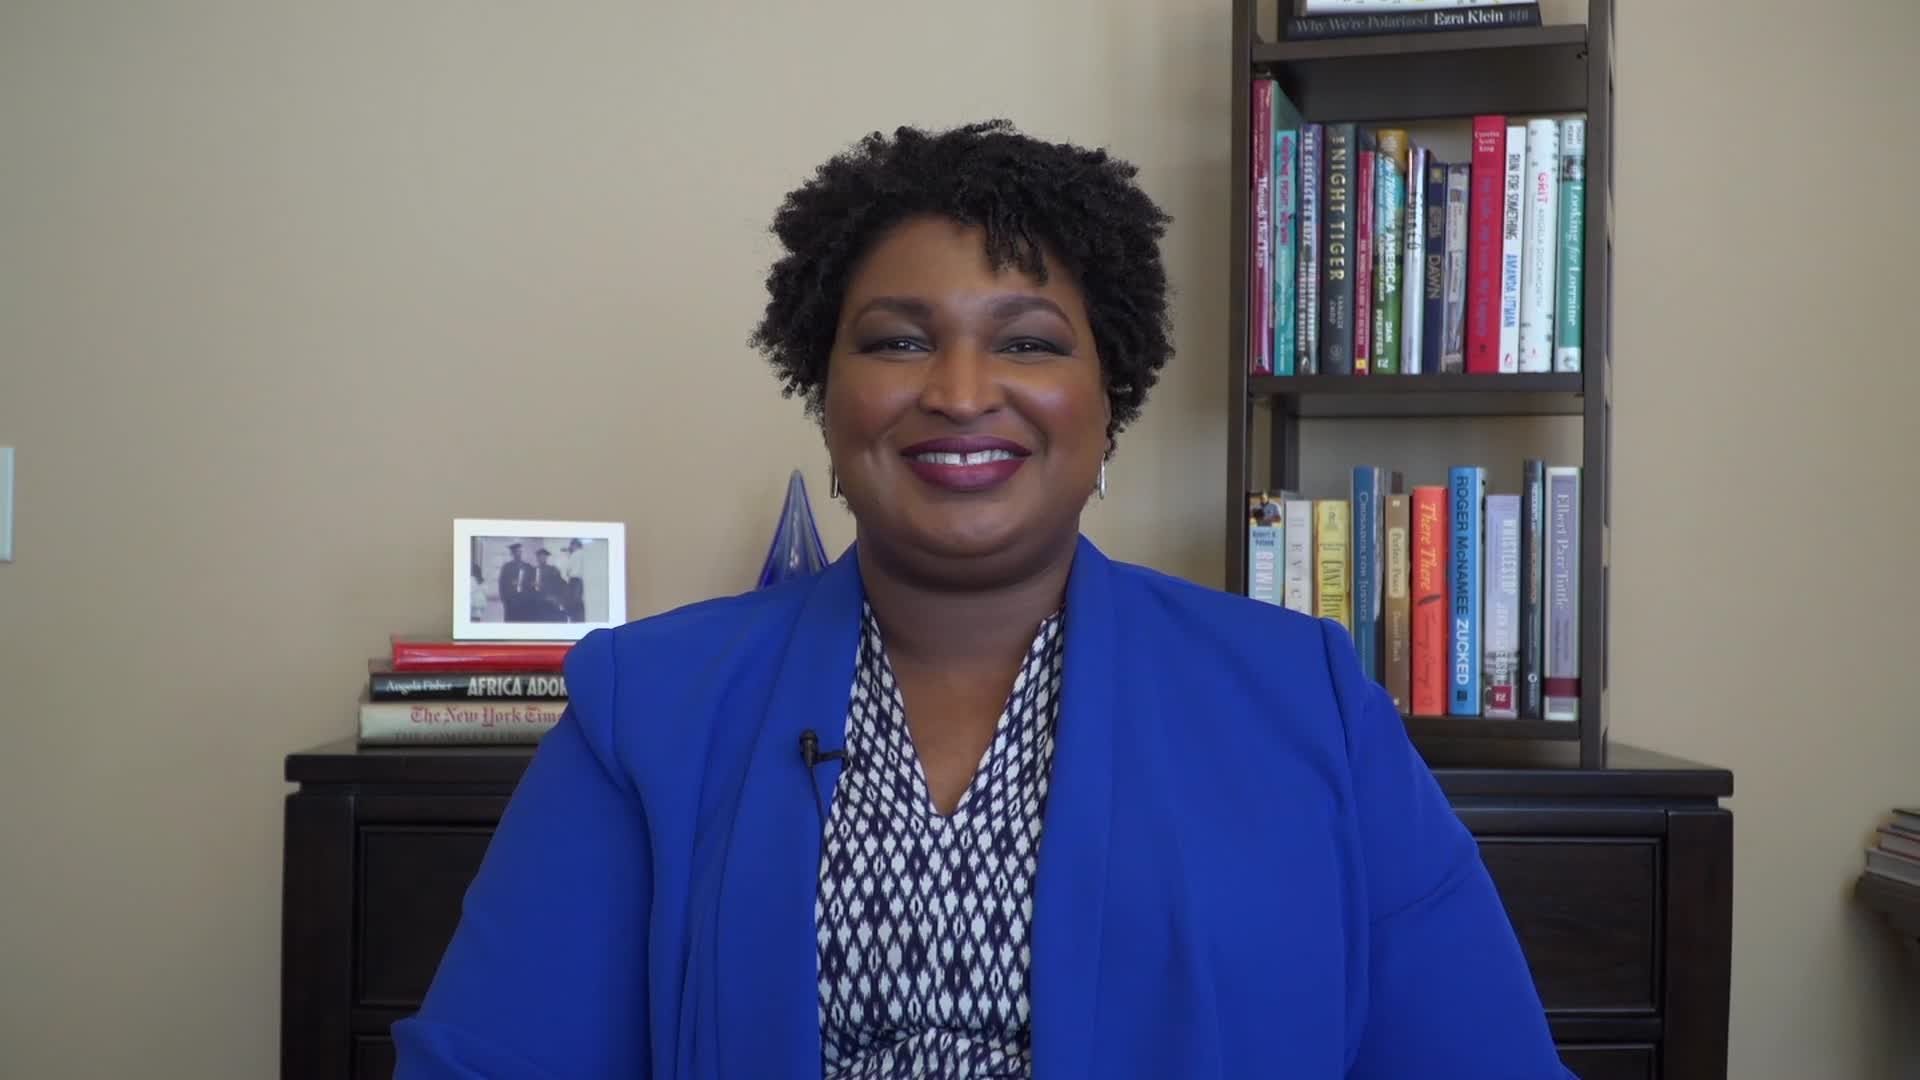 Georgia Democrat Stacey Abrams on her not joining protesters in person: I 'do what I can to support their message, but not to distract from their efforts'